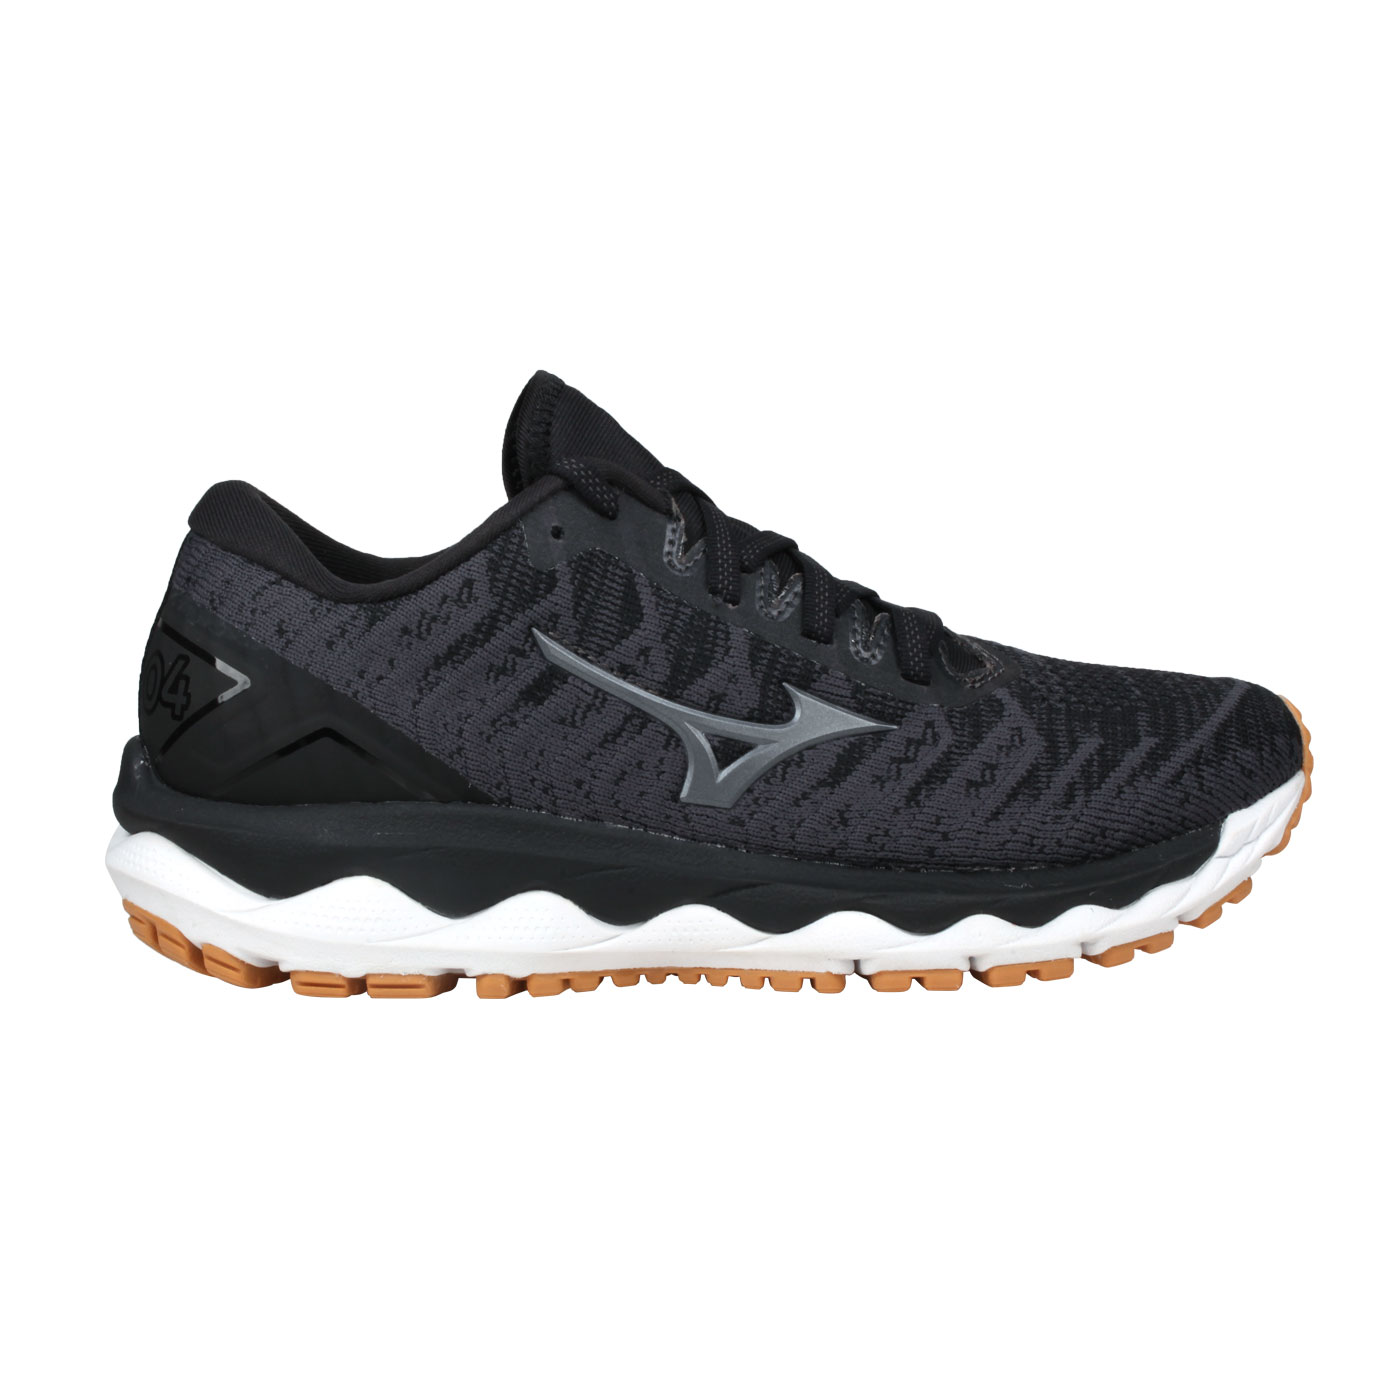 MIZUNO 女款慢跑鞋-3E  @WAVE SKY 4 WAVEKNIT WIDE@J1GD208449